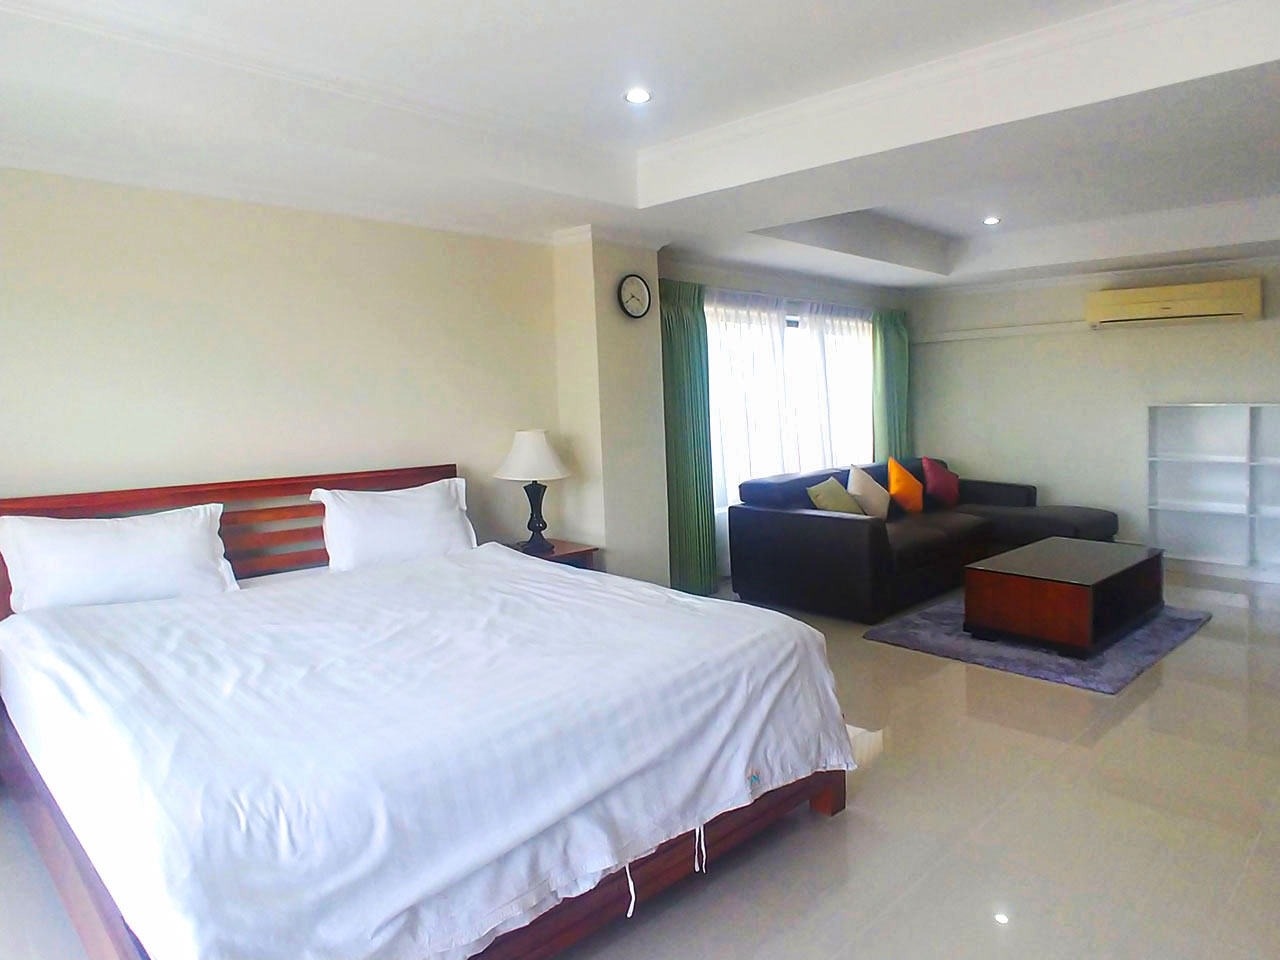 3 Master beds plus 1 small room penthouse for rent @ BKK 1